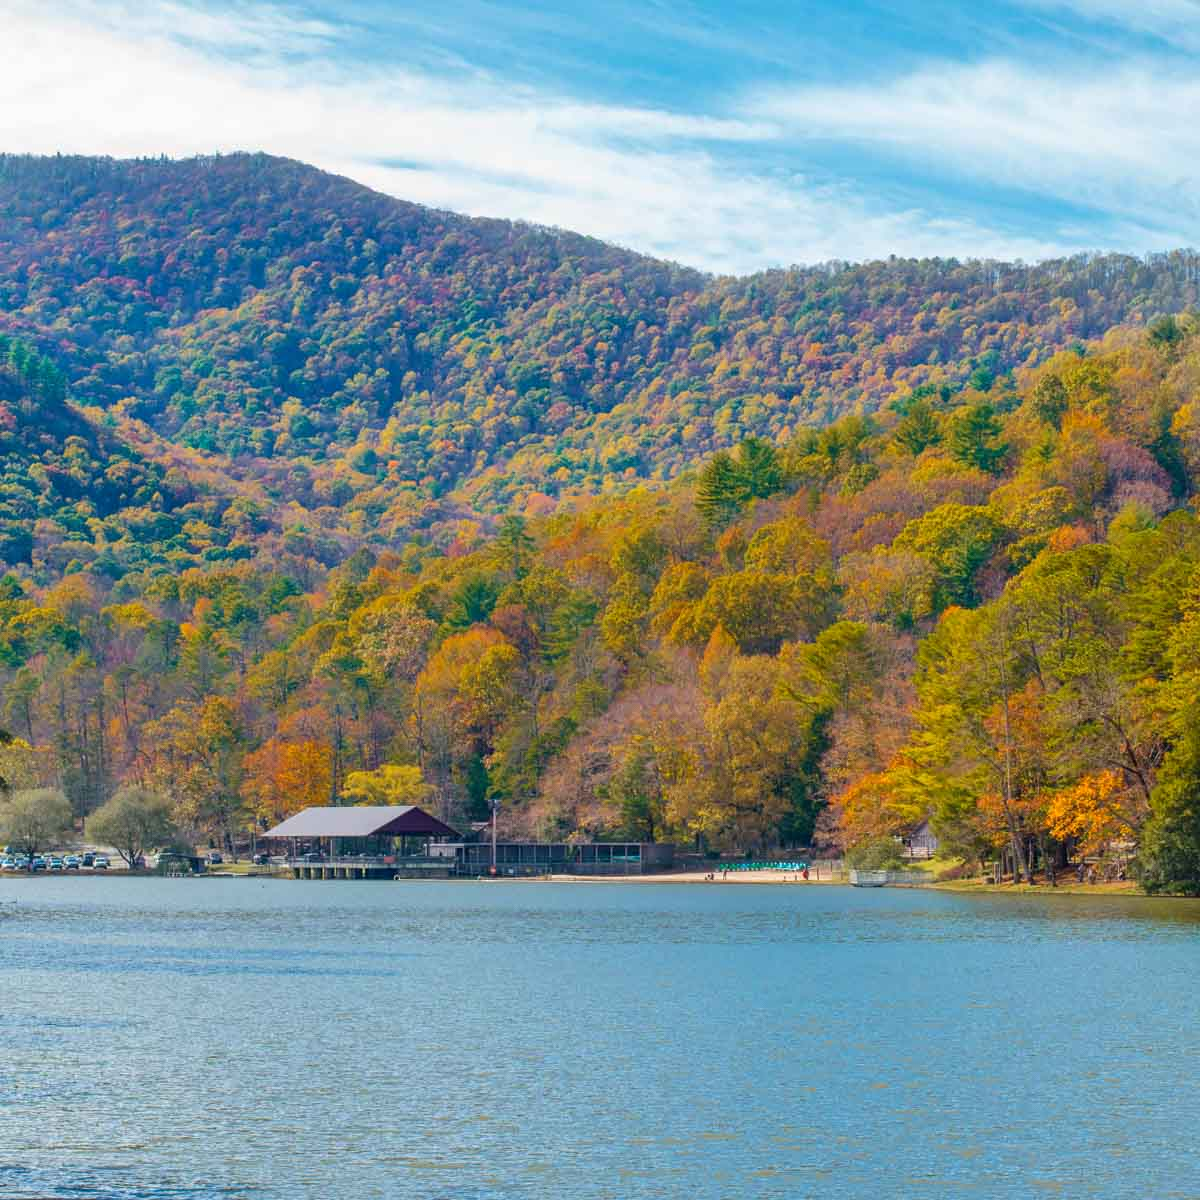 Fall foliage surrounding Lake Trahlyta at Vogel State Park in North Georgia